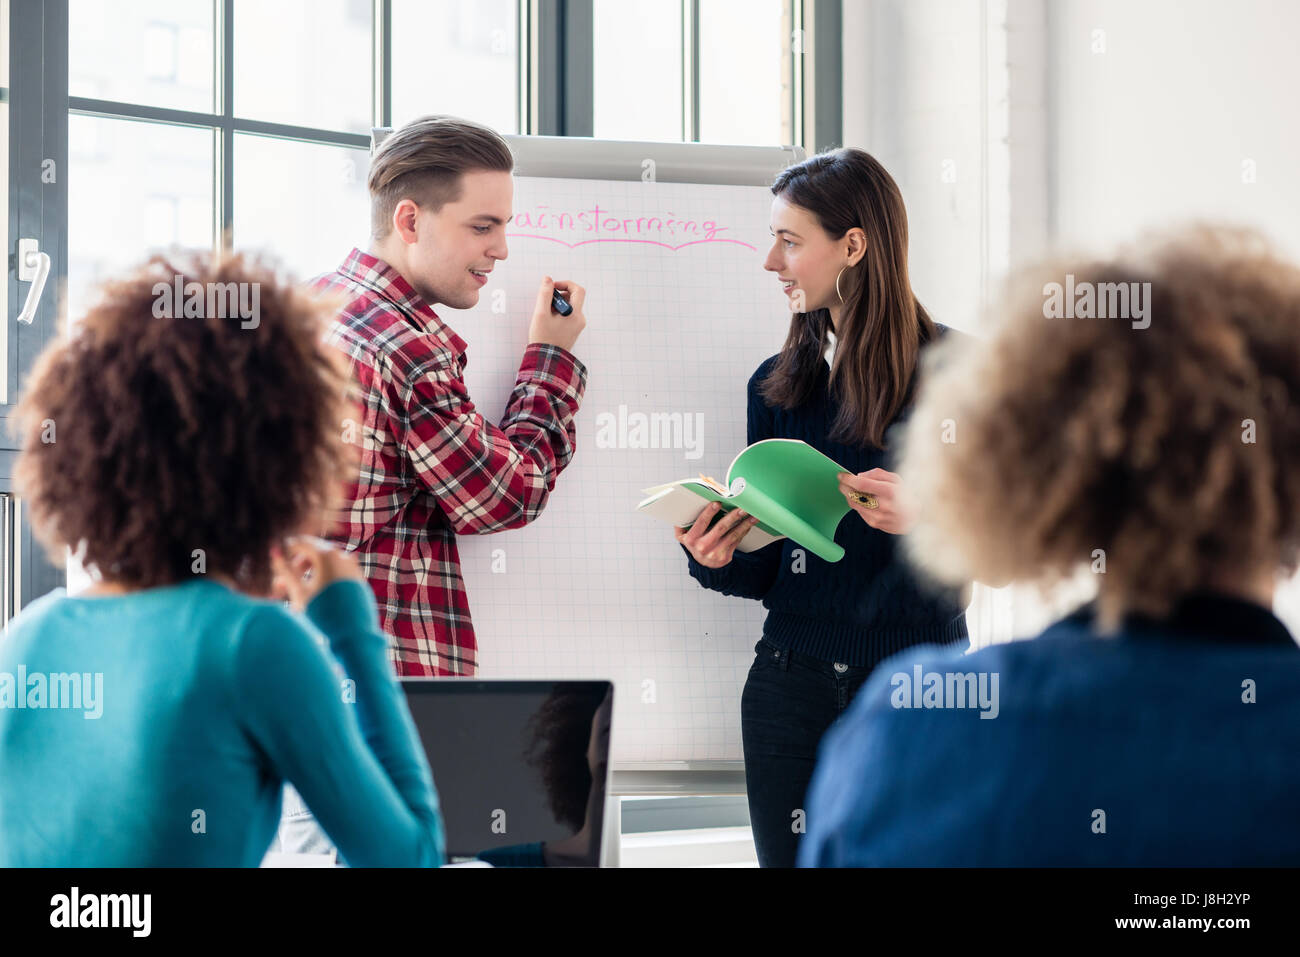 Students sharing ideas and opinions while brainstorming during a - Stock Image